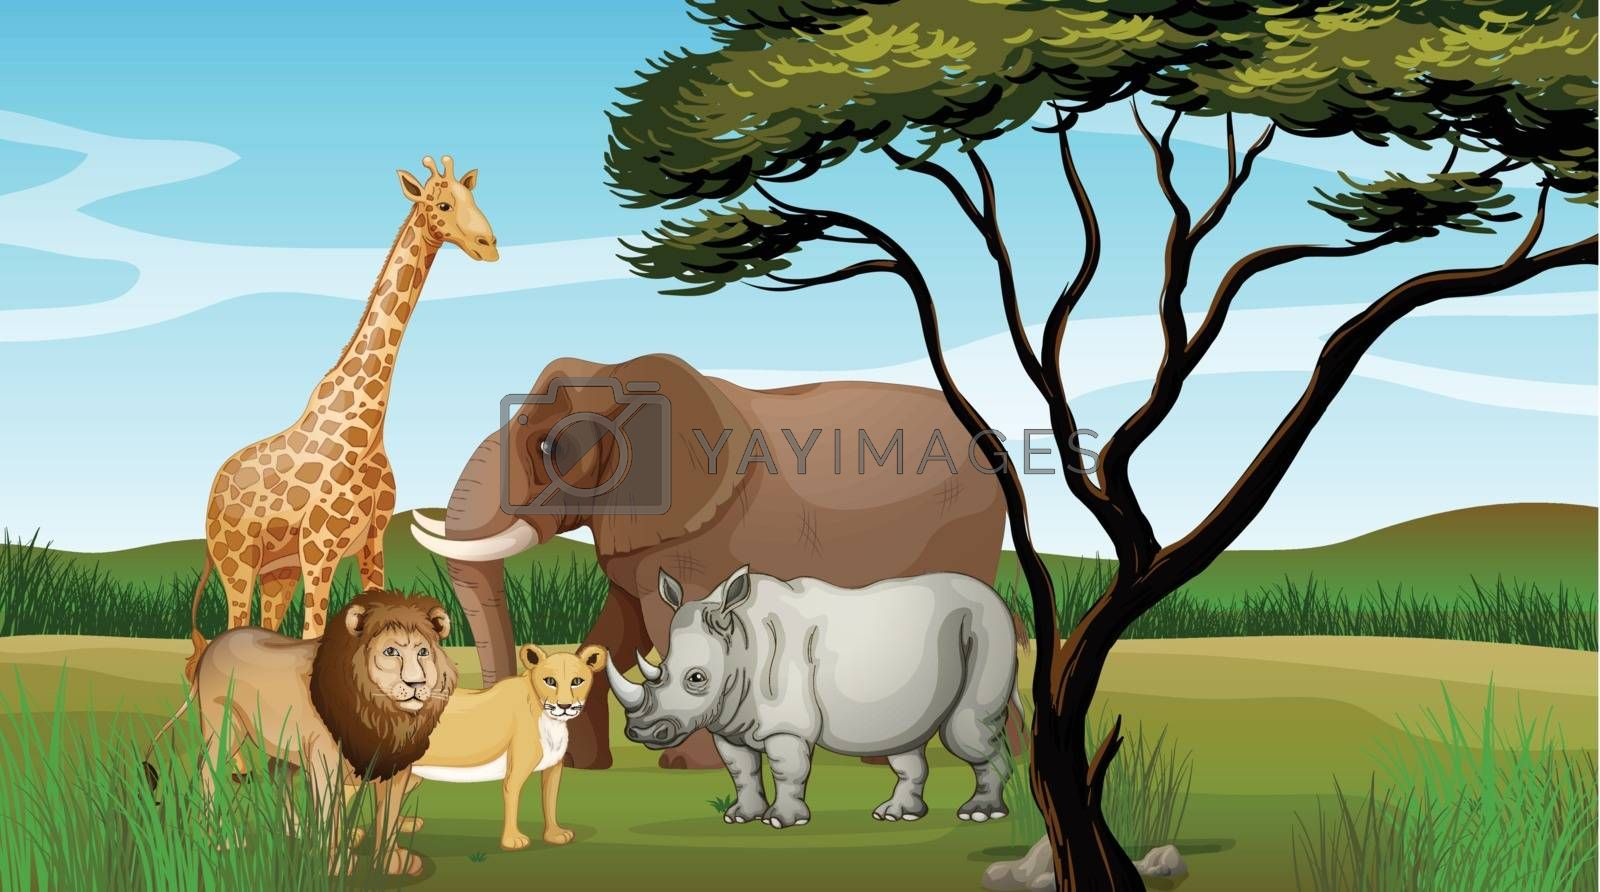 Illustration of scary animals in the jungle